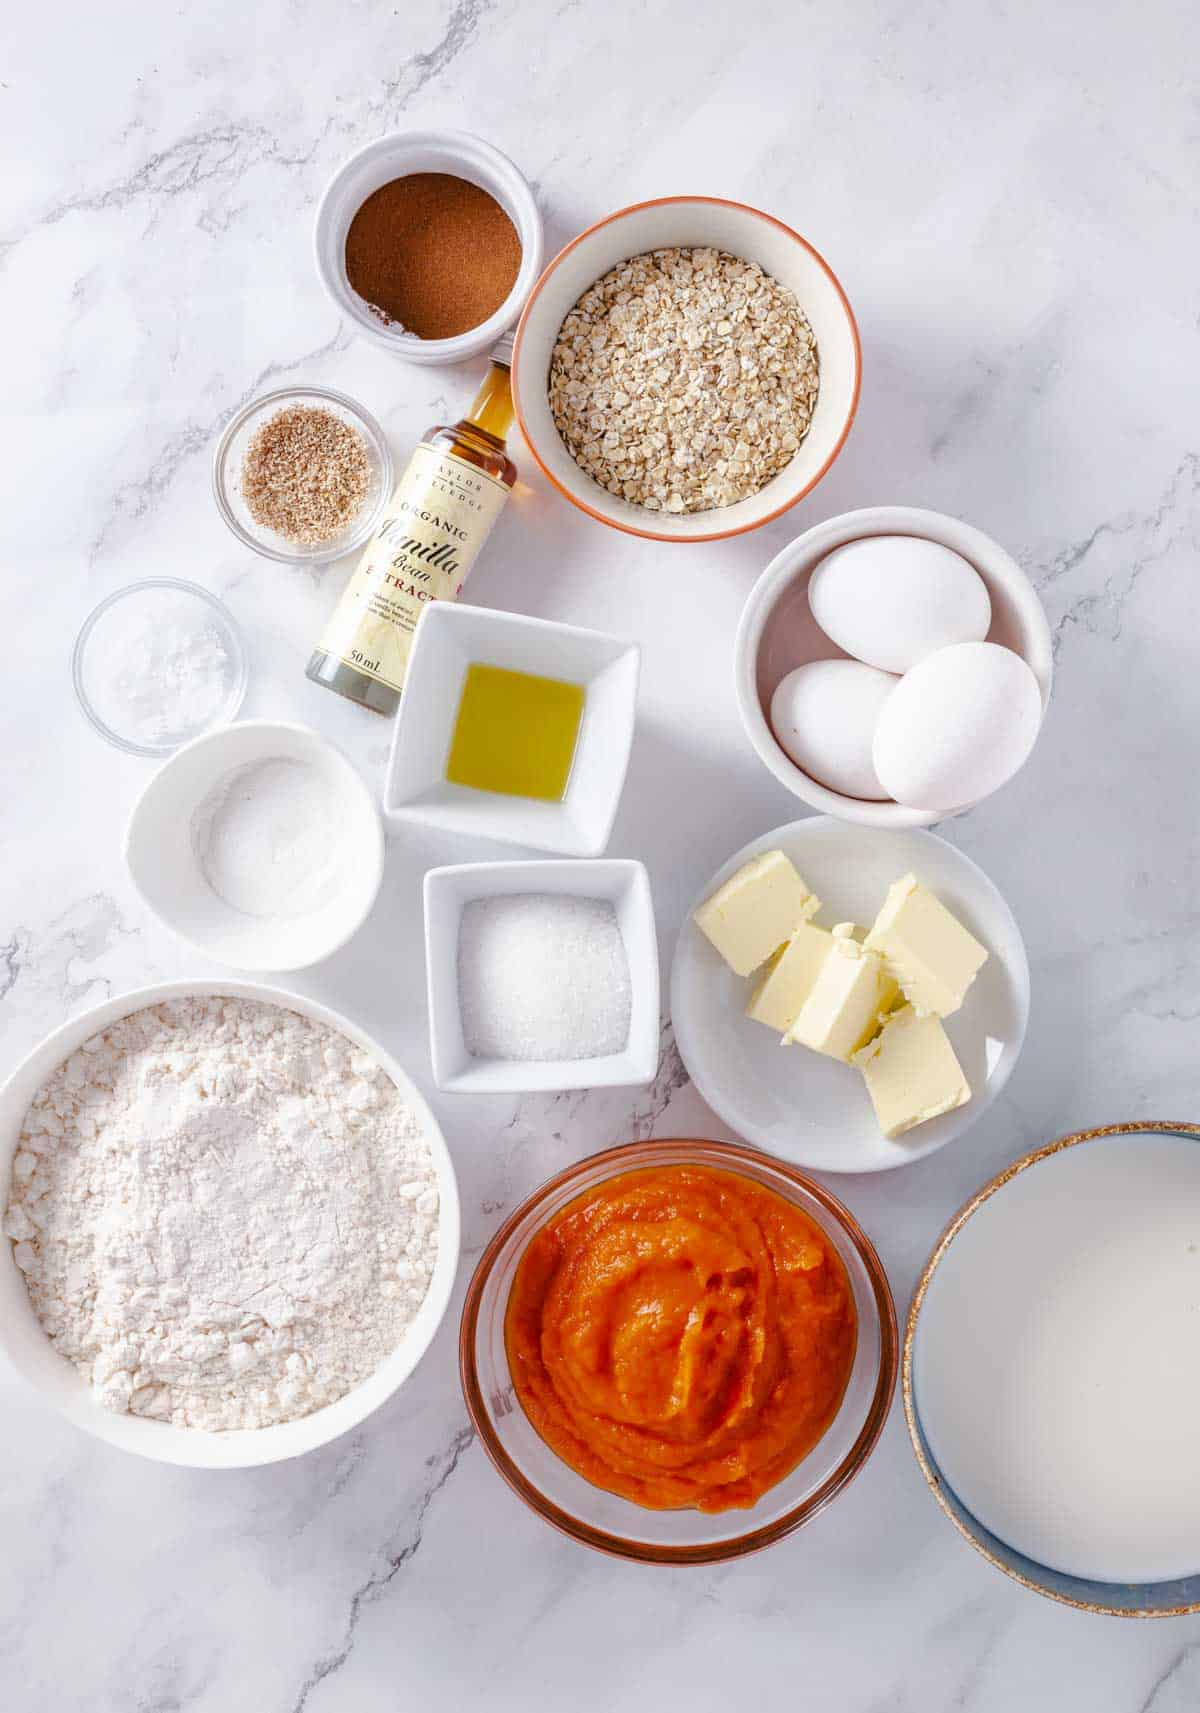 ingredients for pancakes with pumpkin, flour, eggs, sugar, andoats